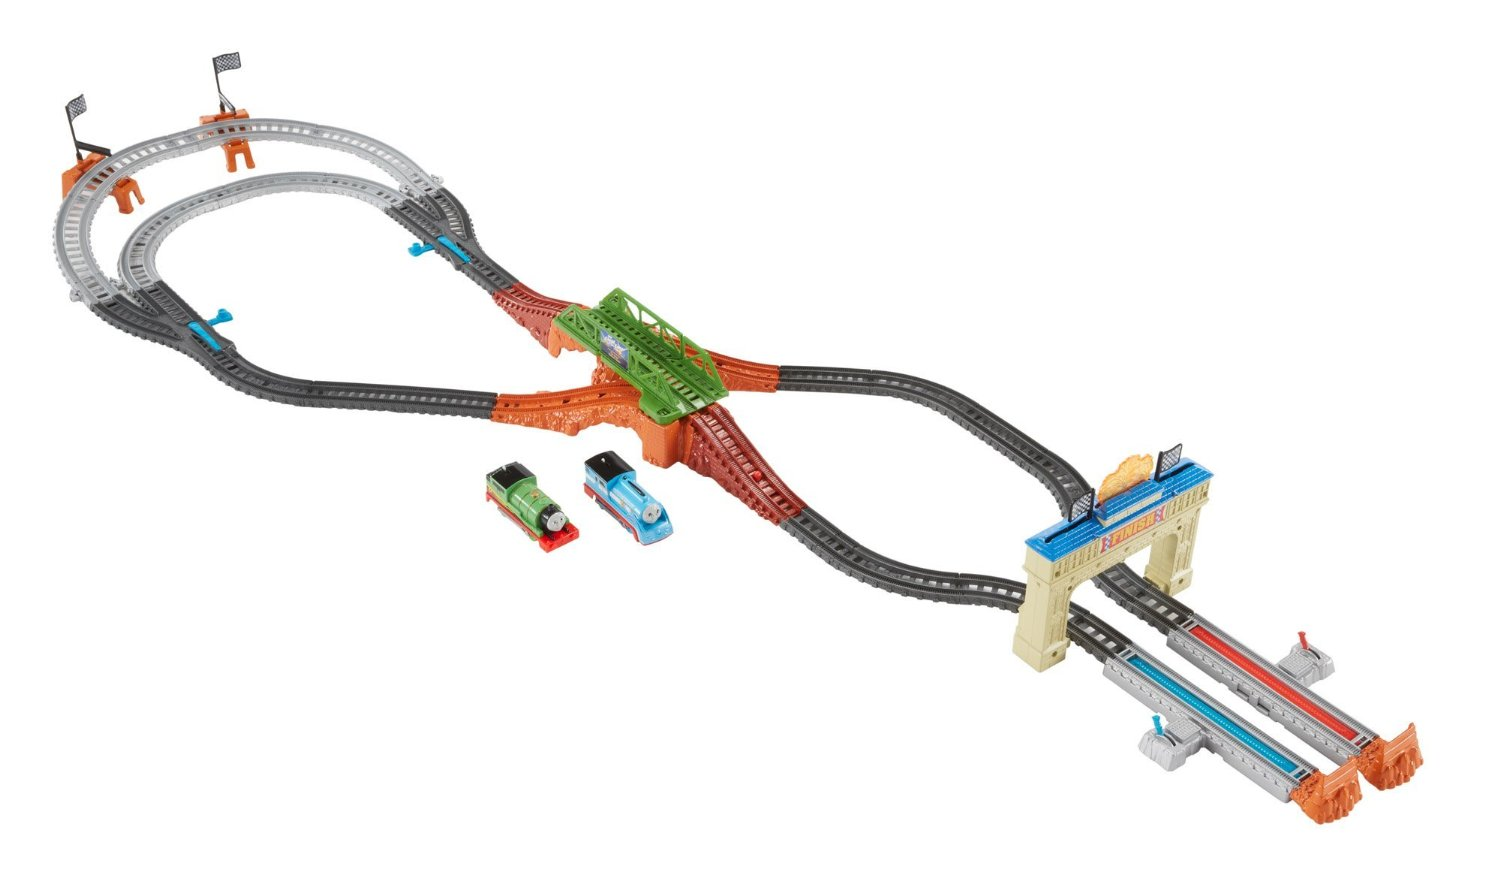 trackmaster railway race set assembly instructions